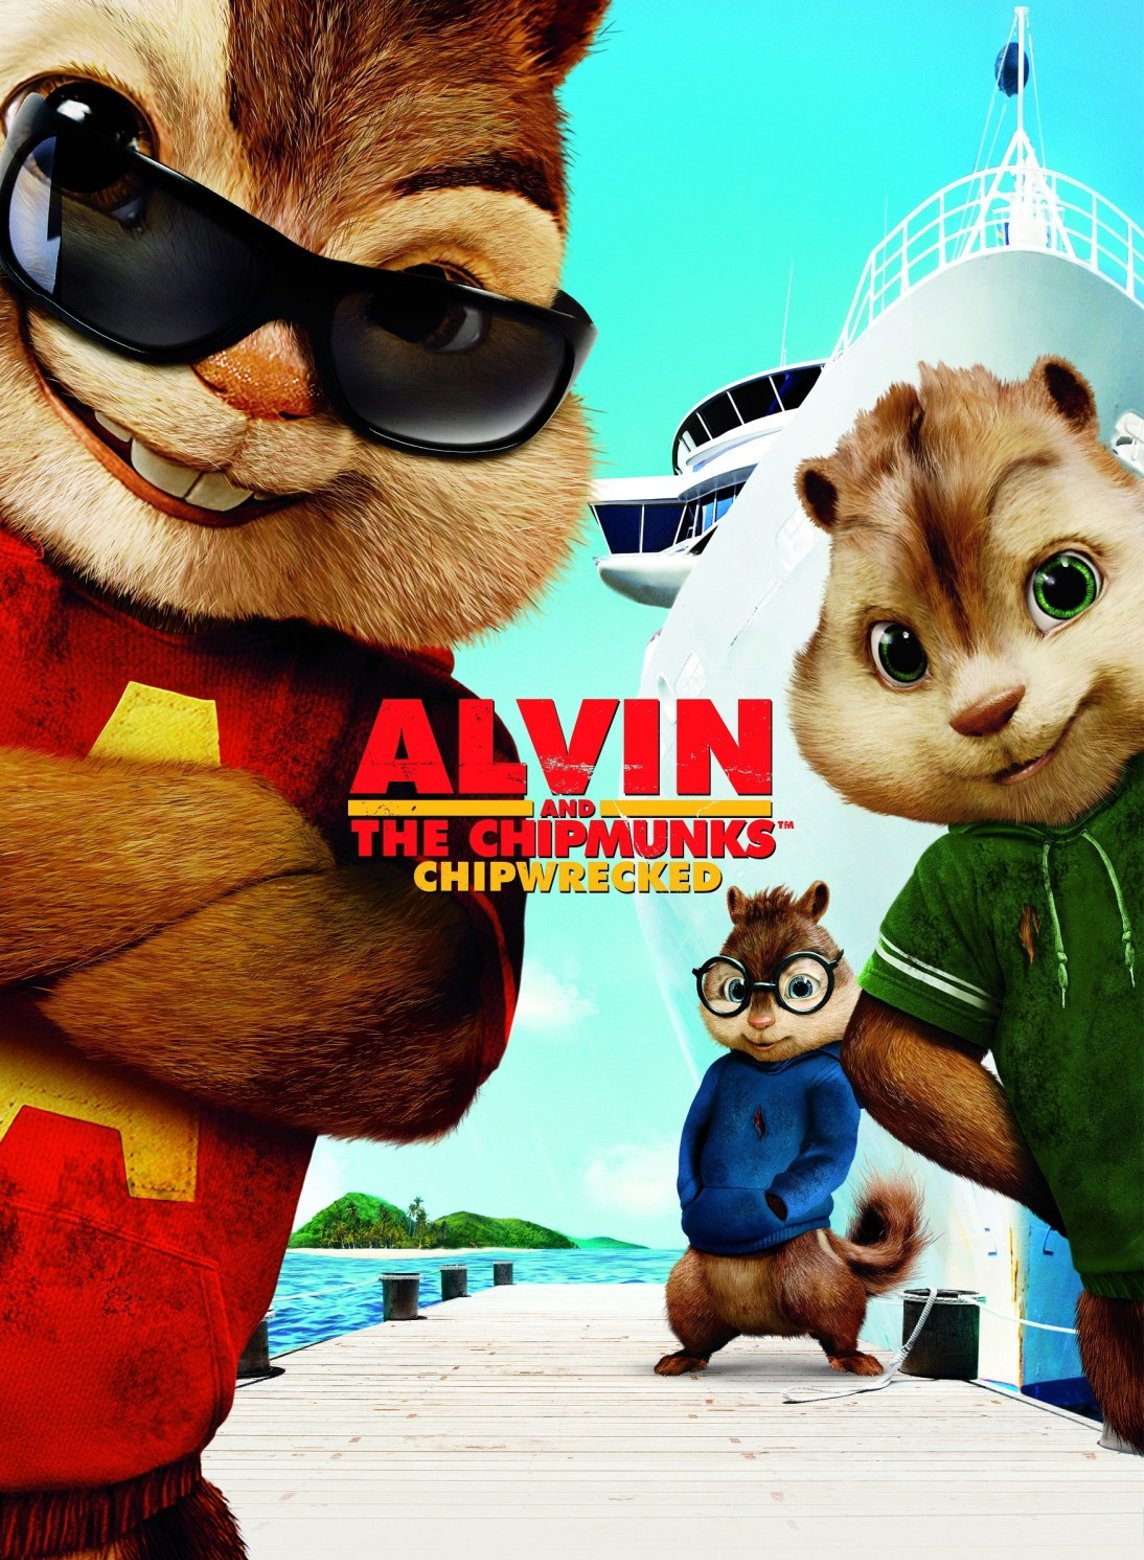 alvin and the chipmunks - photo #25